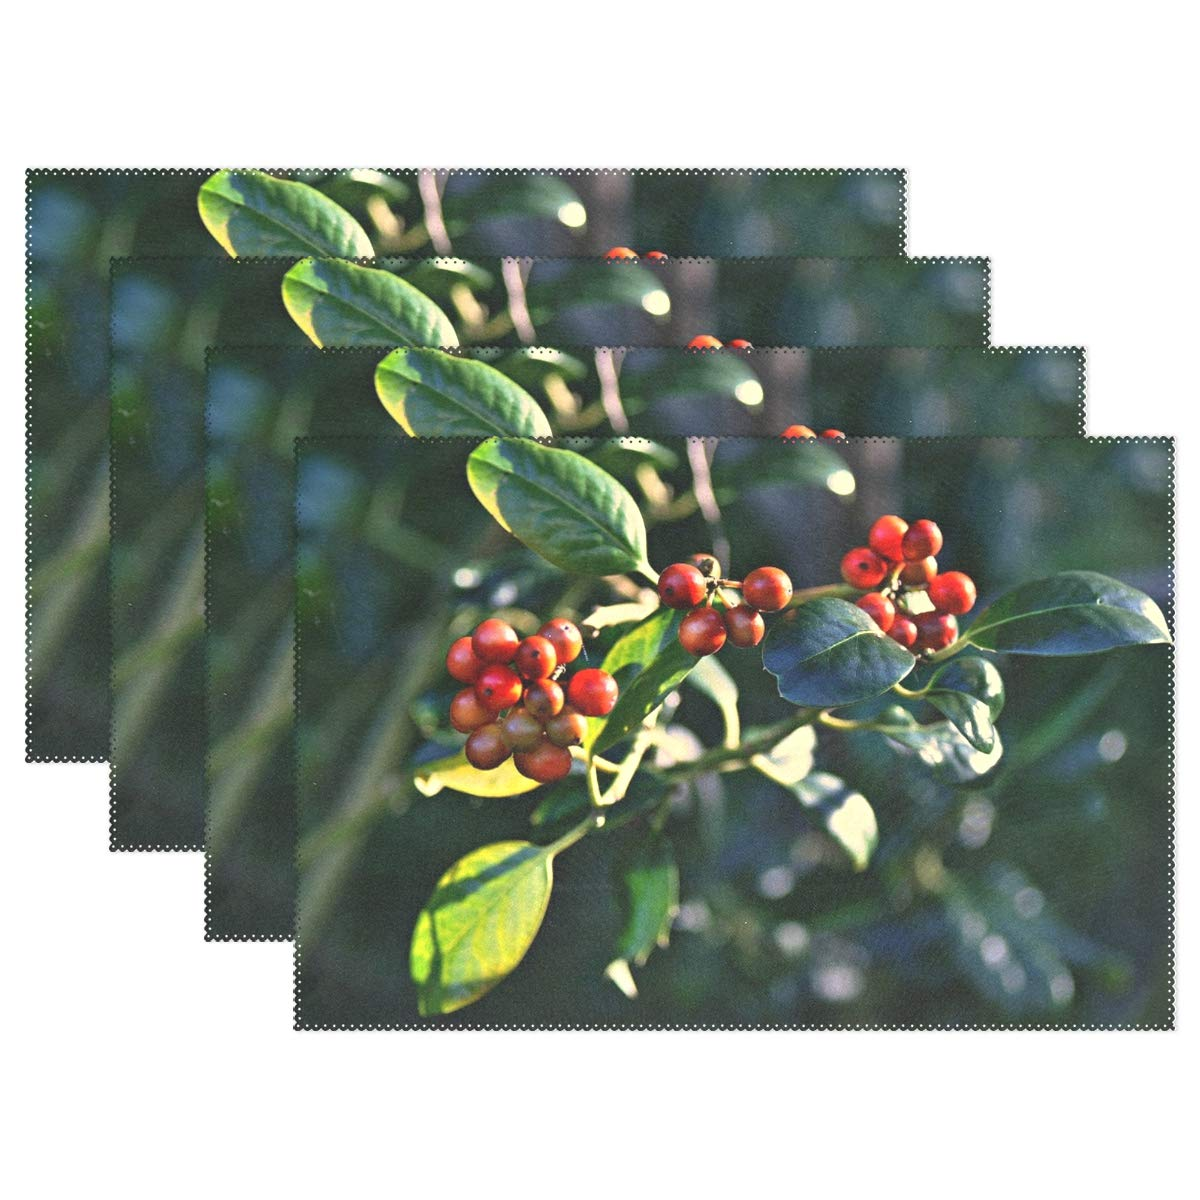 JTMOVING Berry Berries Fruit Ripe Autumn Leaf Leaves Shrub Placemats Set Of 4 Heat Insulation Stain Resistant For Dining Table Durable Non-slip Kitchen Table Place Mats